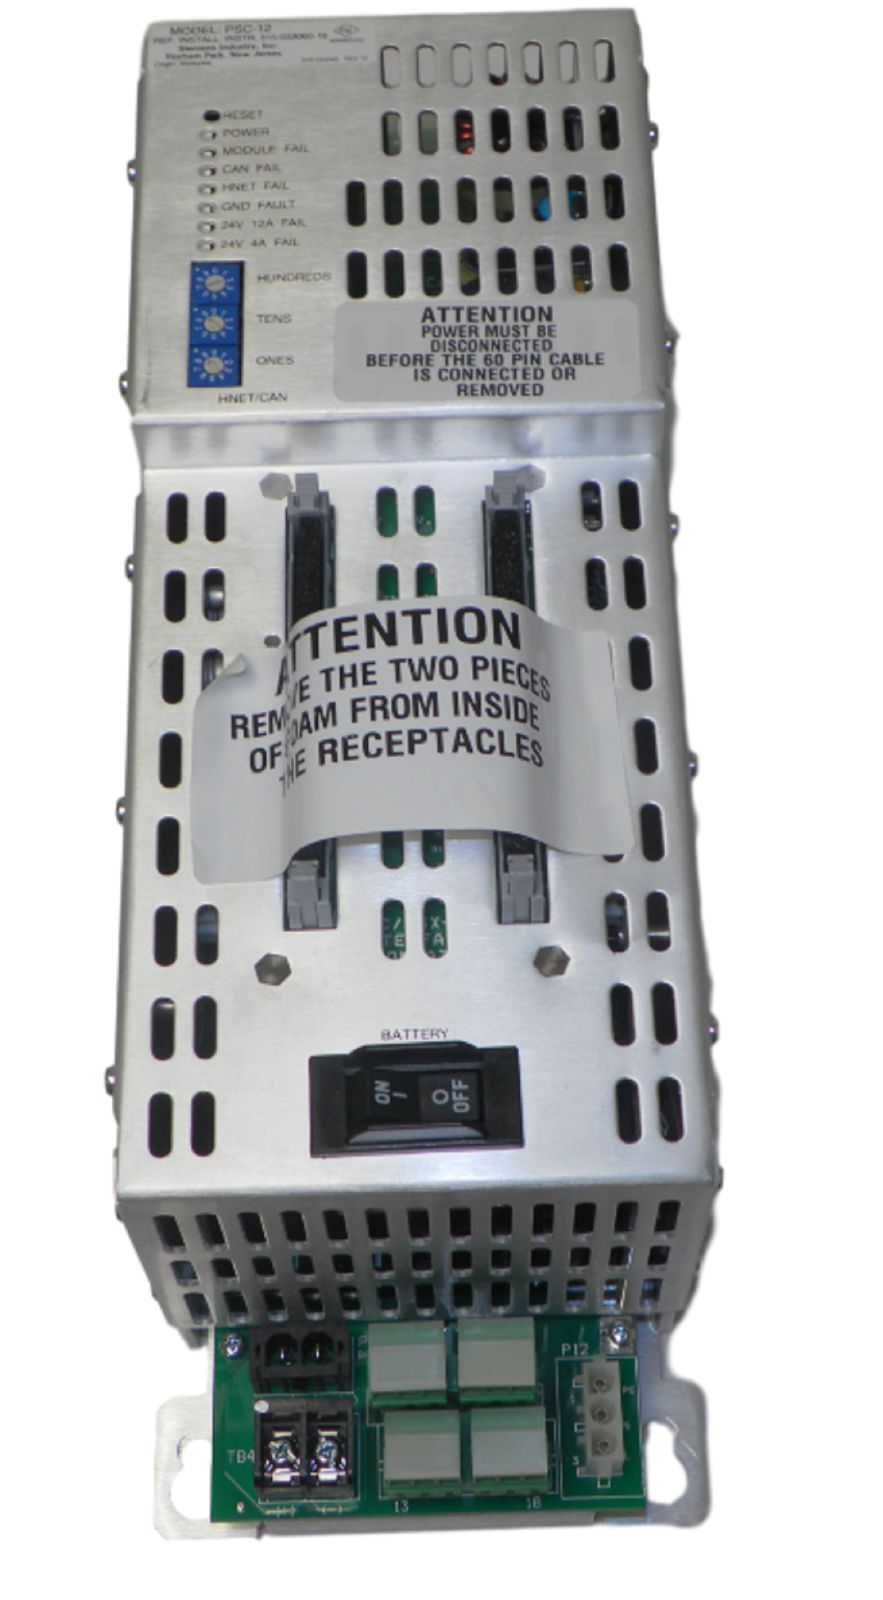 Siemens PSC-12 500-033340 Power Supply Charger Module Fire Smoke Detector Control by Siemens